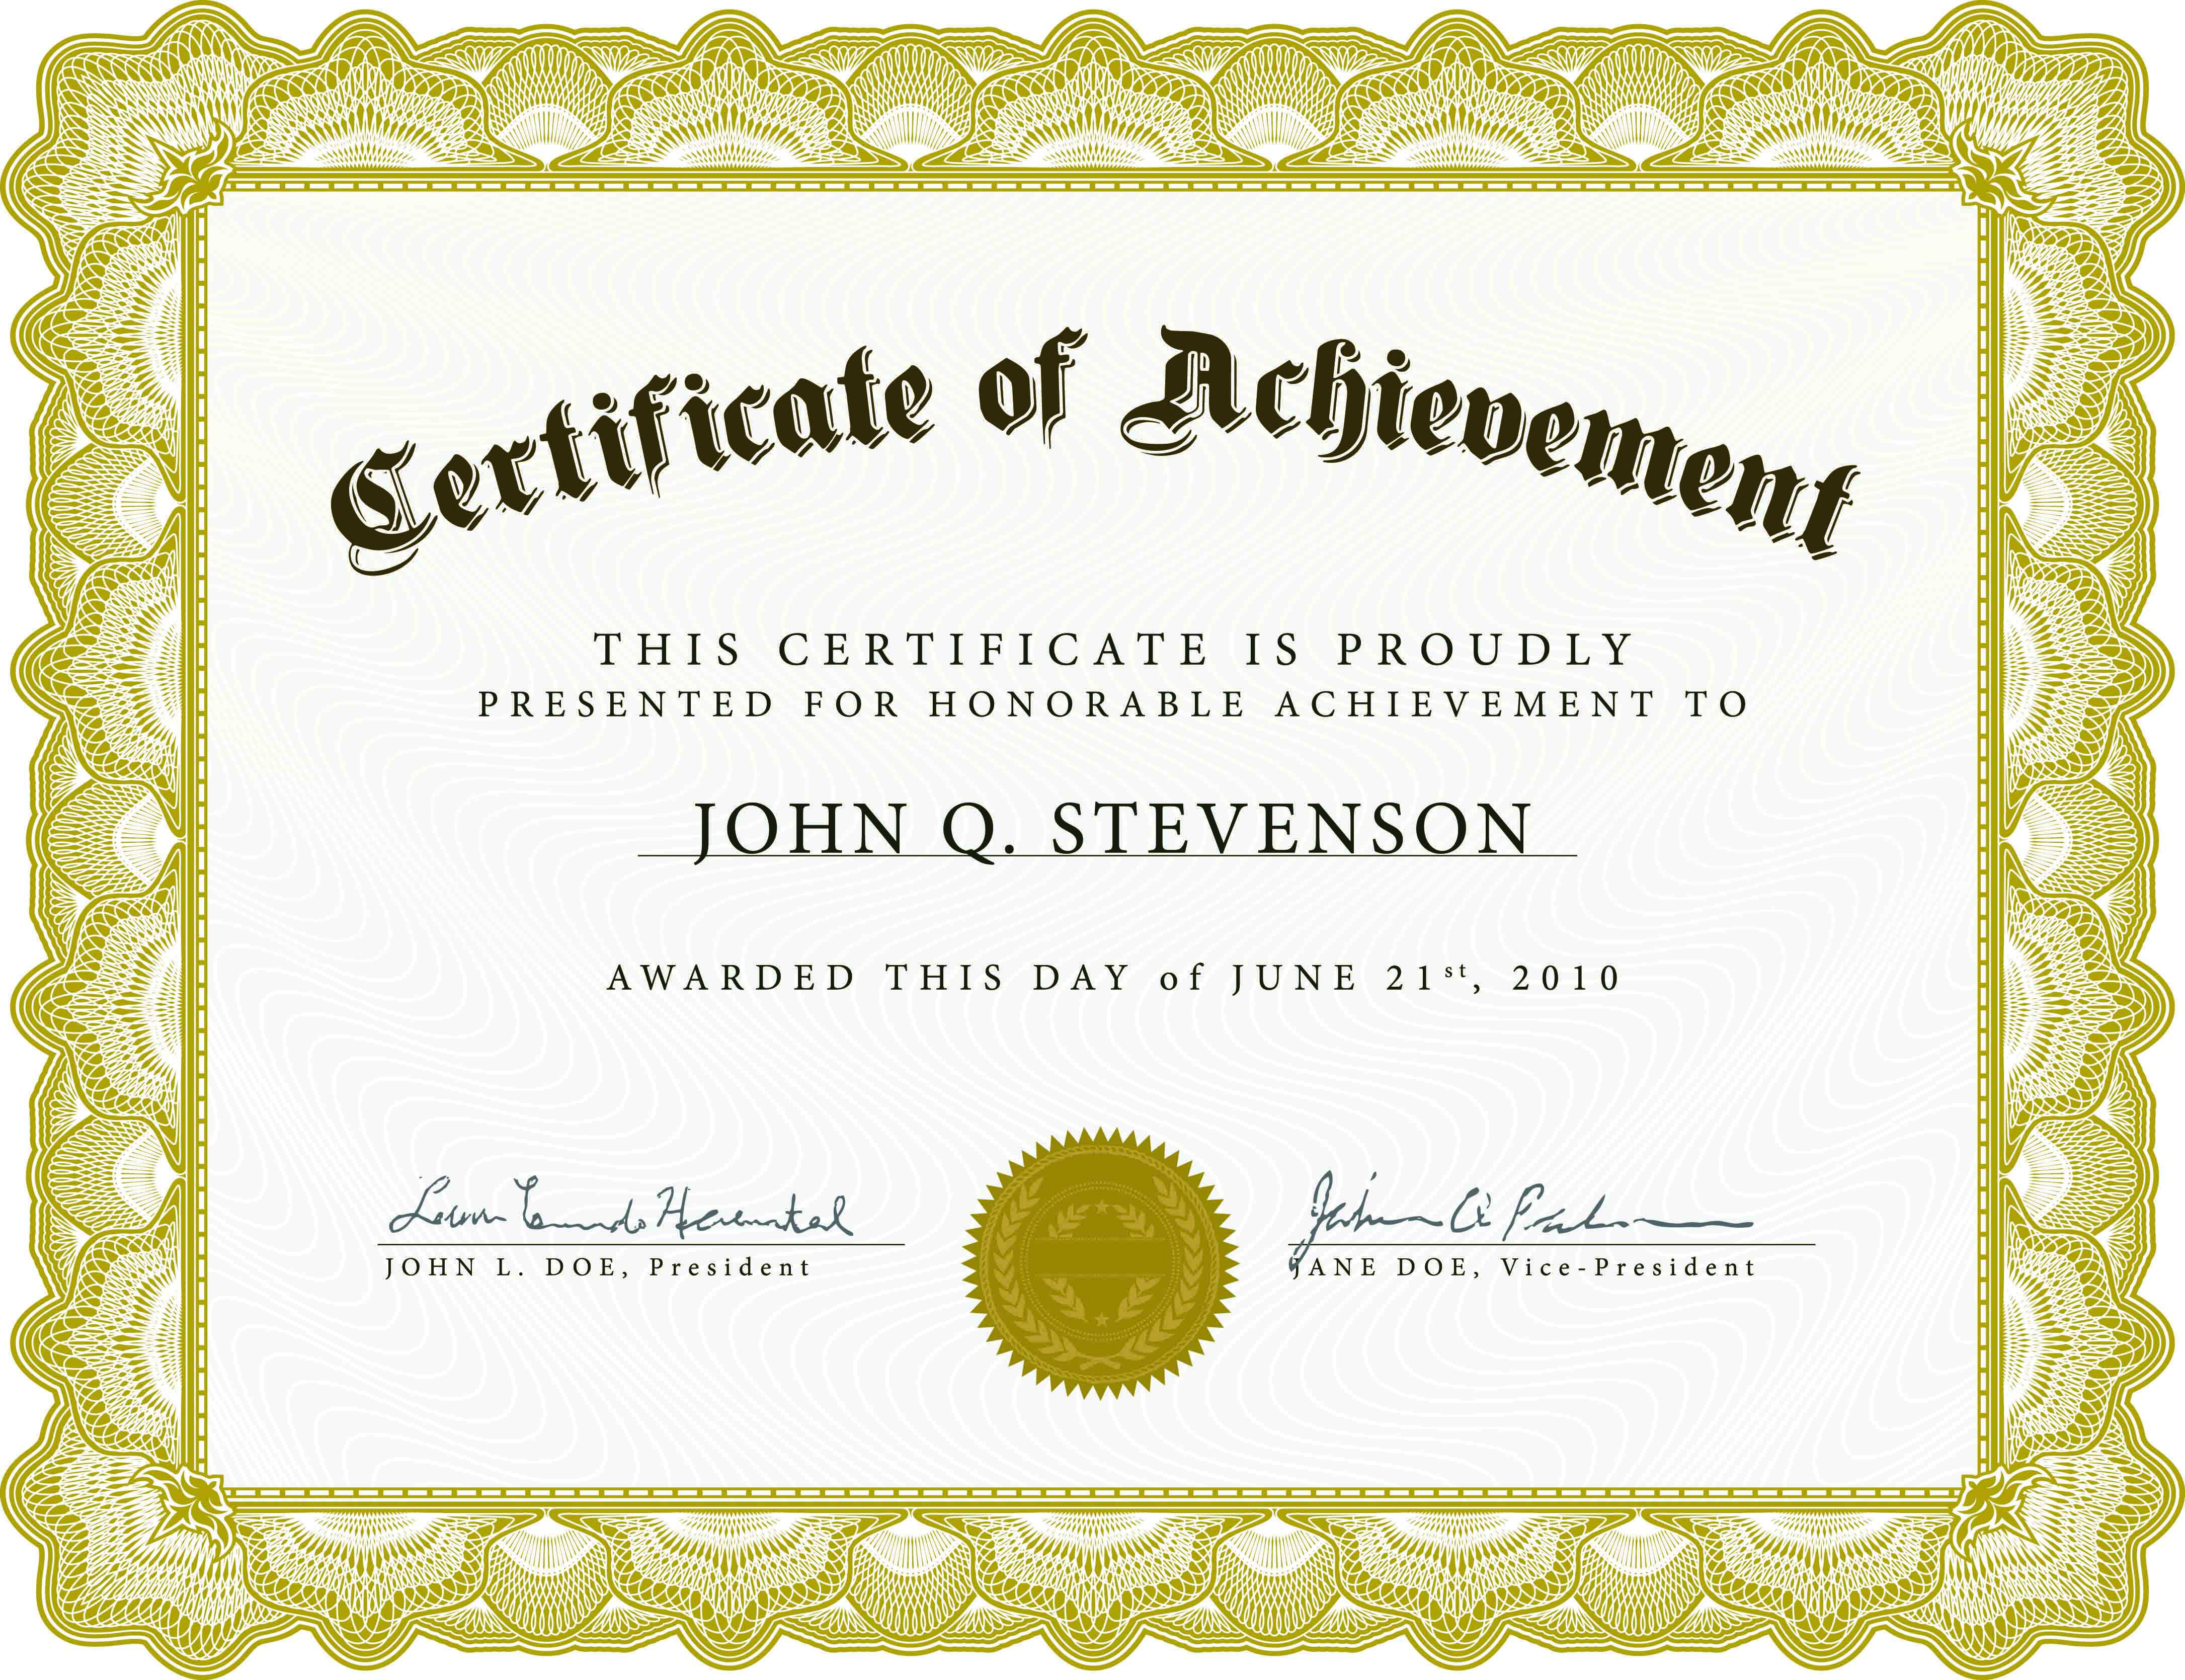 Download Blank Certificate Template X3Hr9Dto   St. Gabriel's Youth - Free Customizable Printable Certificates Of Achievement